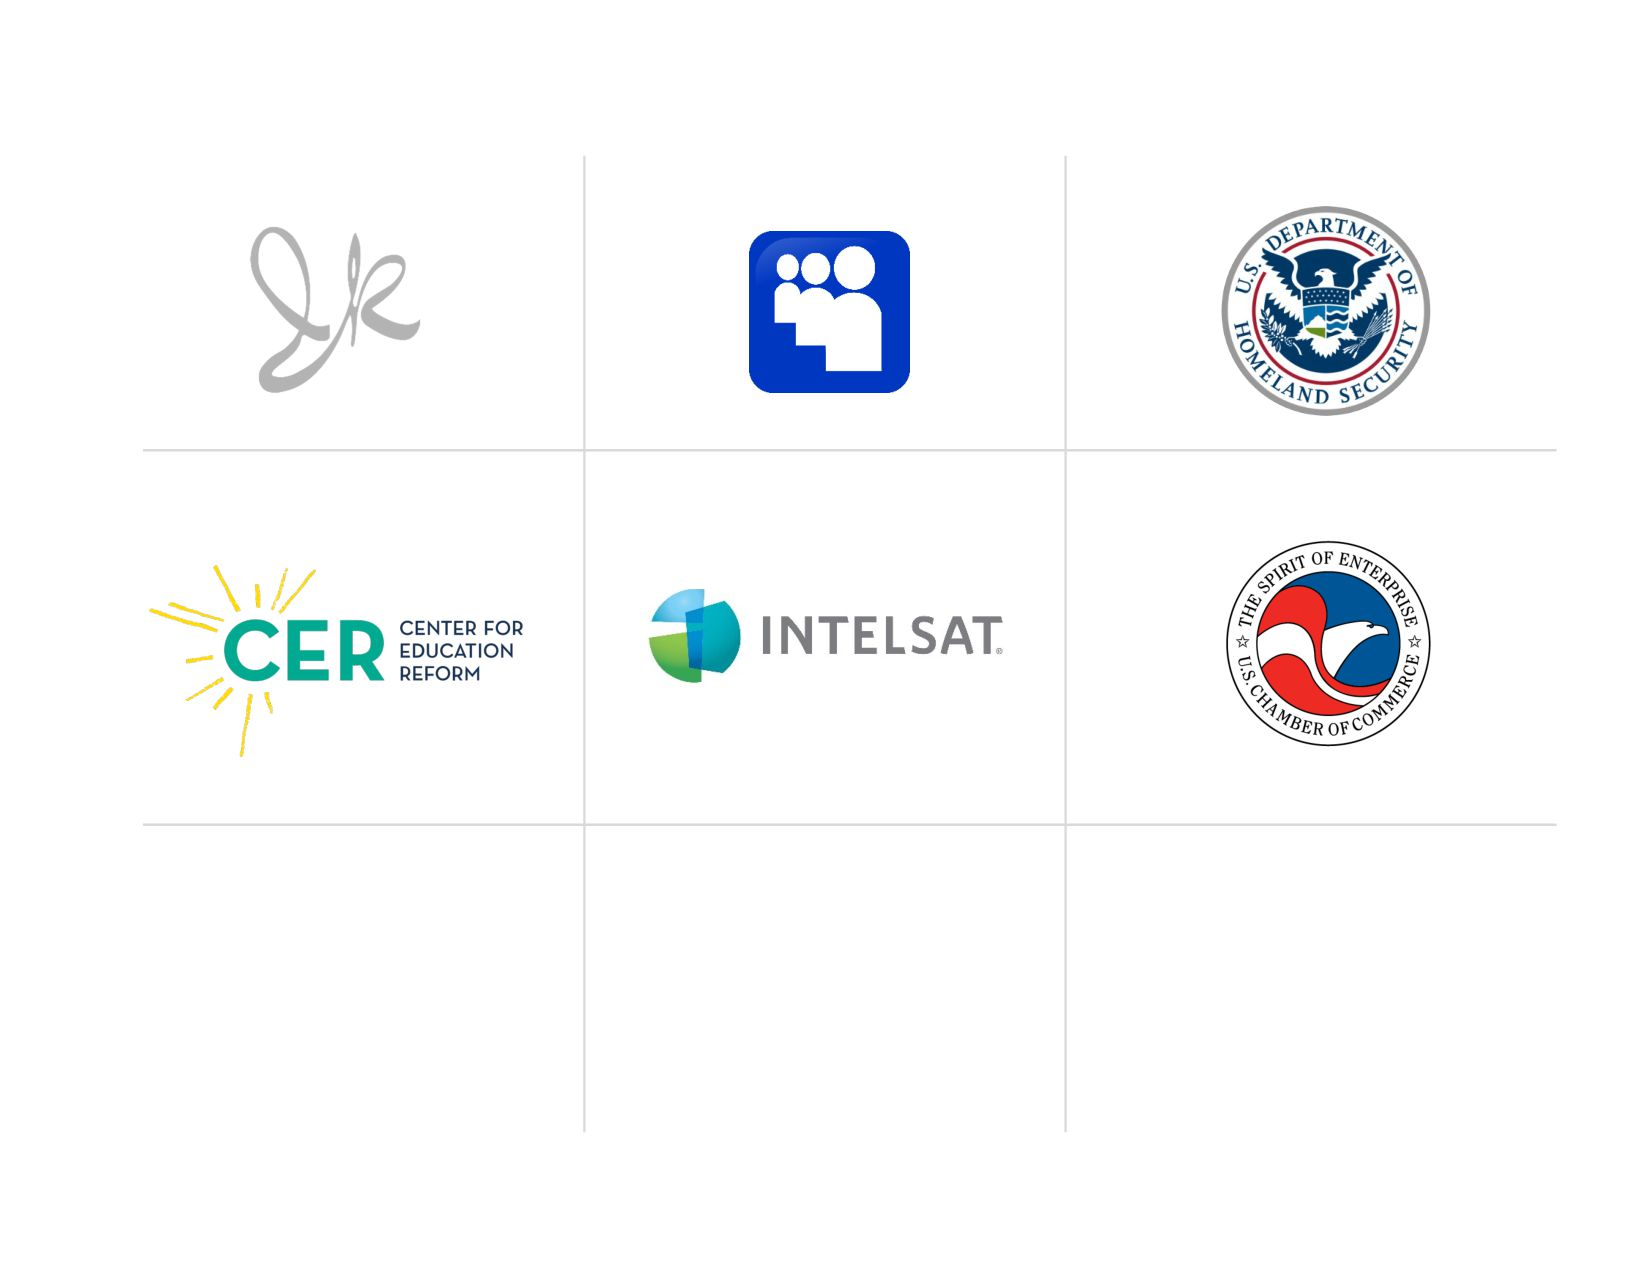 REPARTEE A little social, a little media, with ...